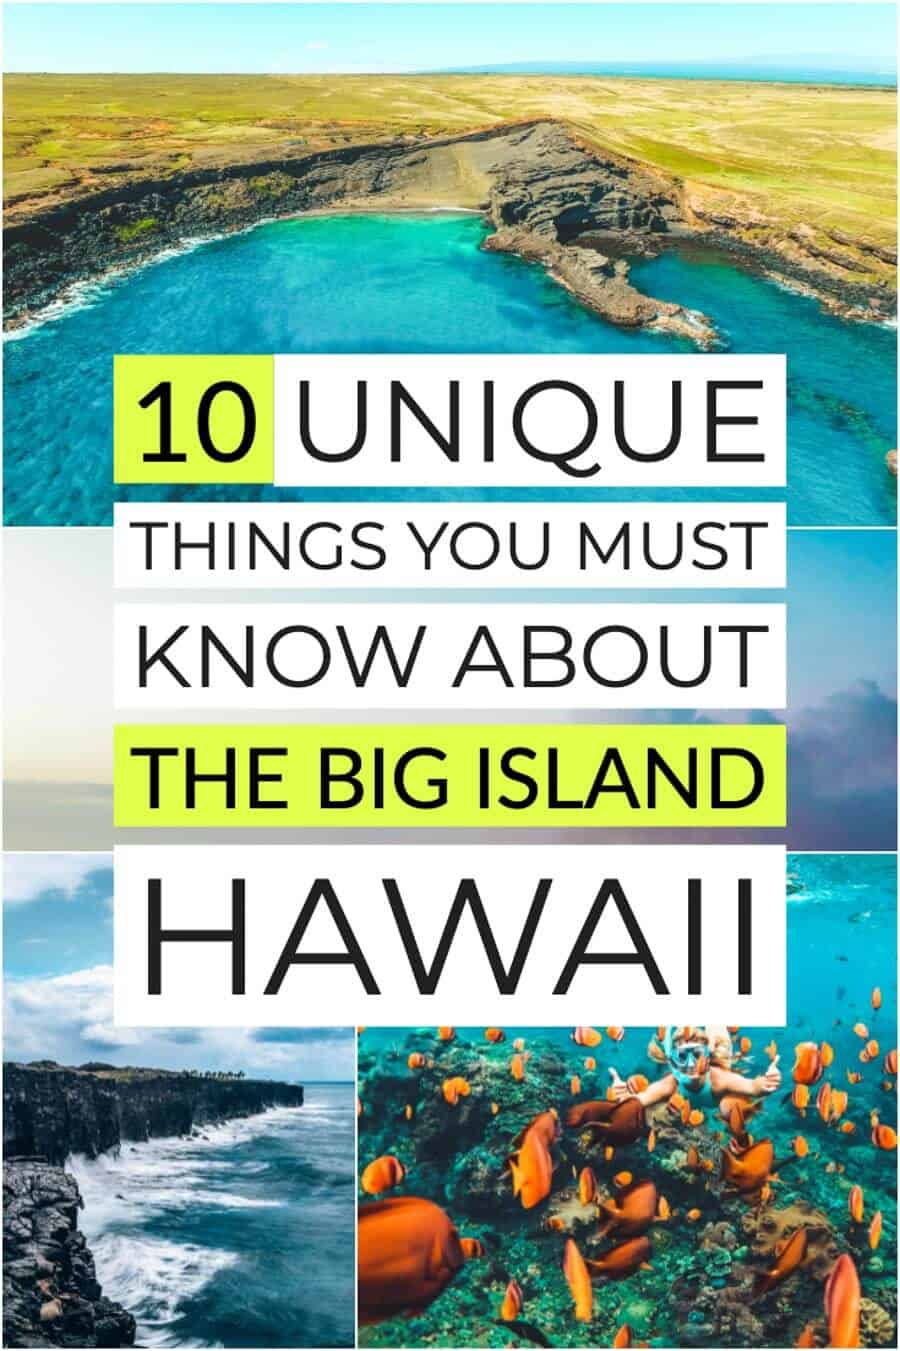 10 Unique Things You Must Know about Hawaii's Big Island